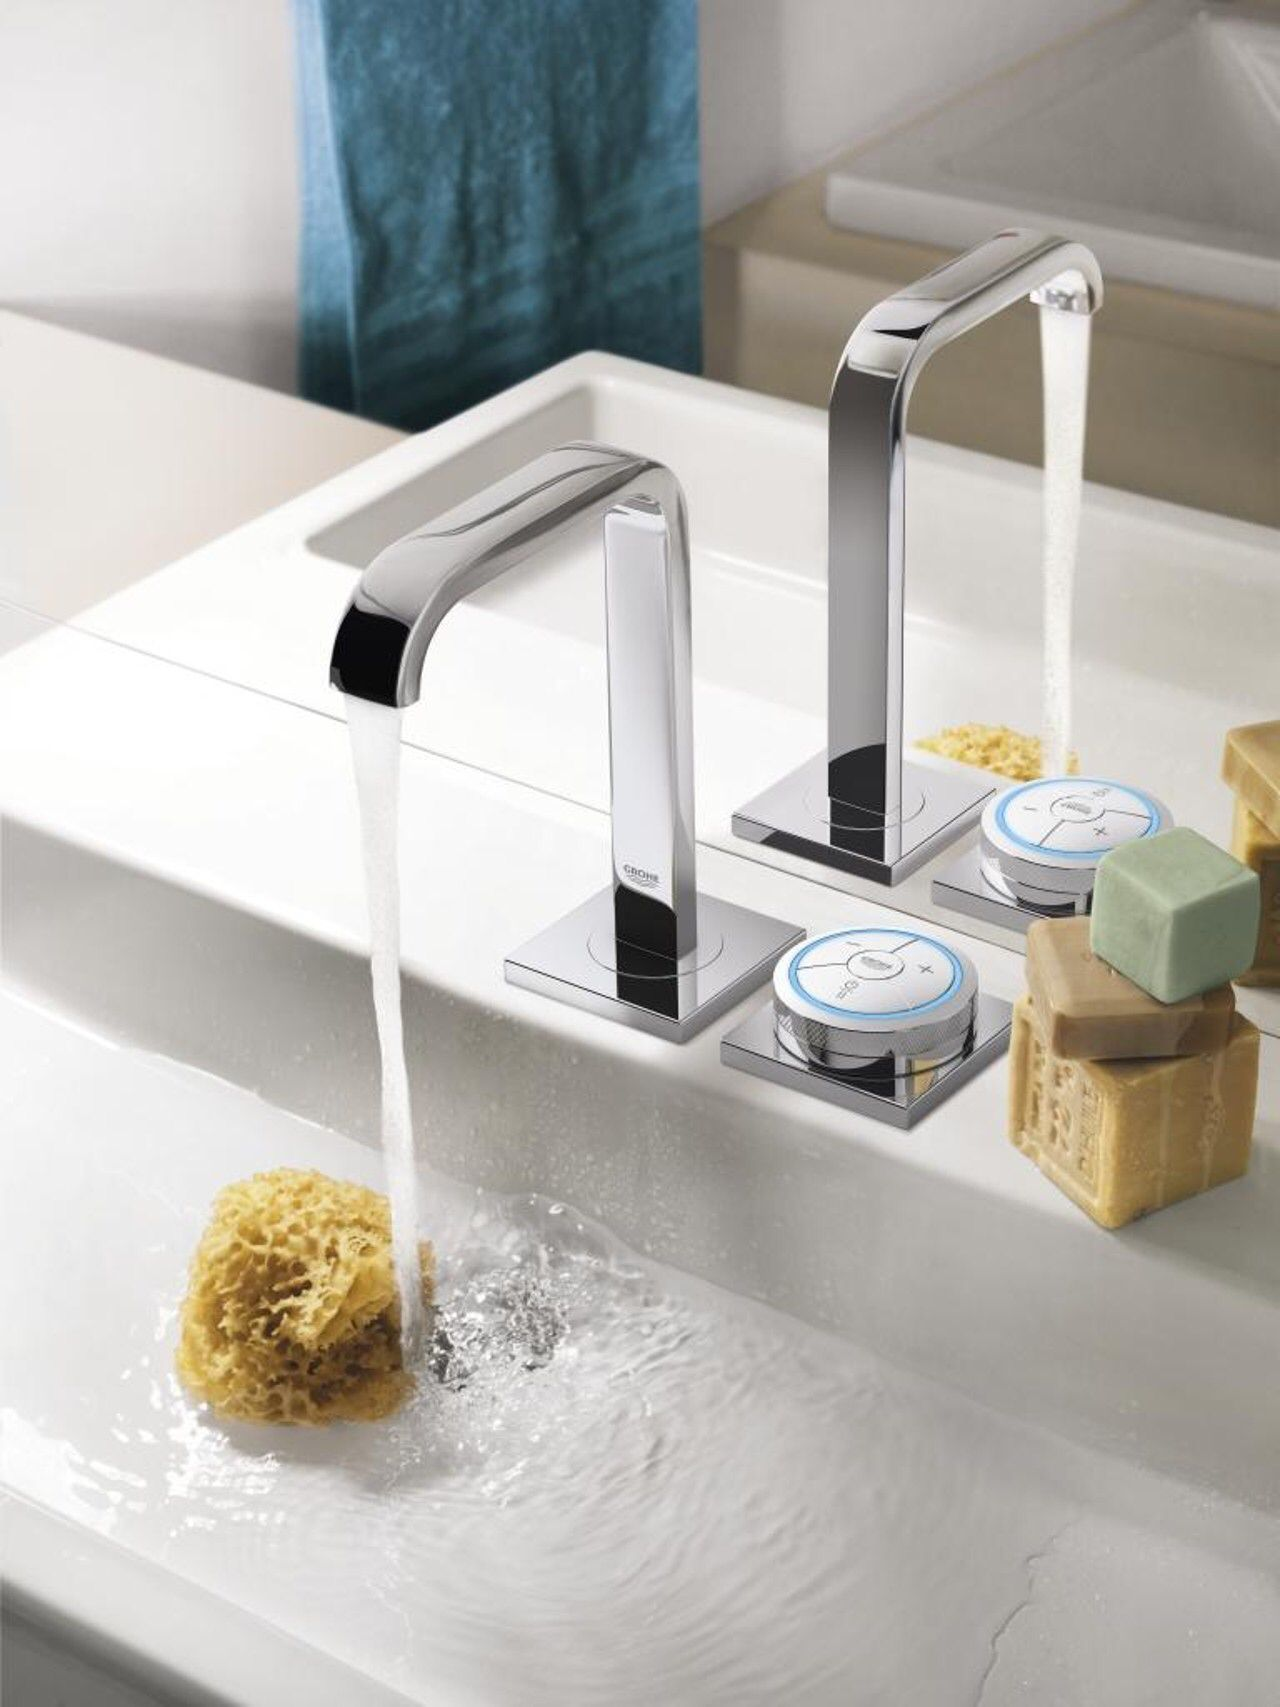 Grohe 36345000 Chrome Allure F Digital Electronic Bathroom Faucet Bathroom Faucets Modern Bathroom Faucets Modern Bathroom